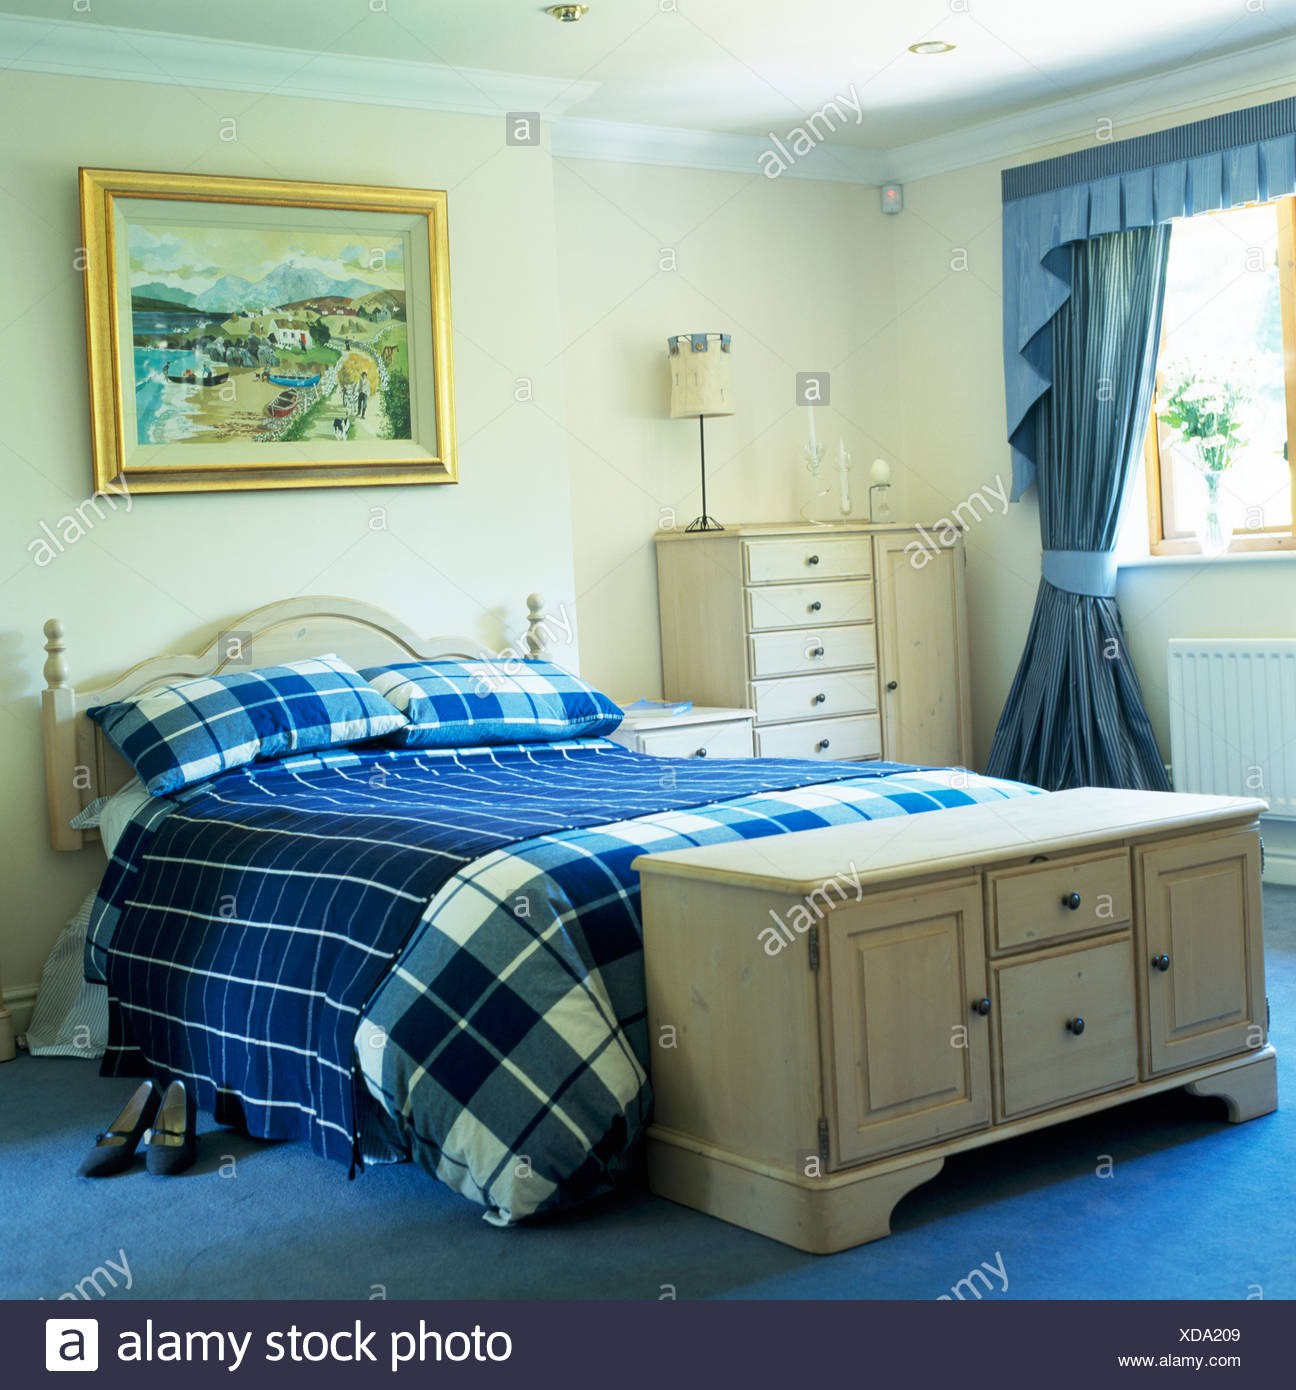 Pale wood chest below bed with blue checked bed-cover and throw in ...